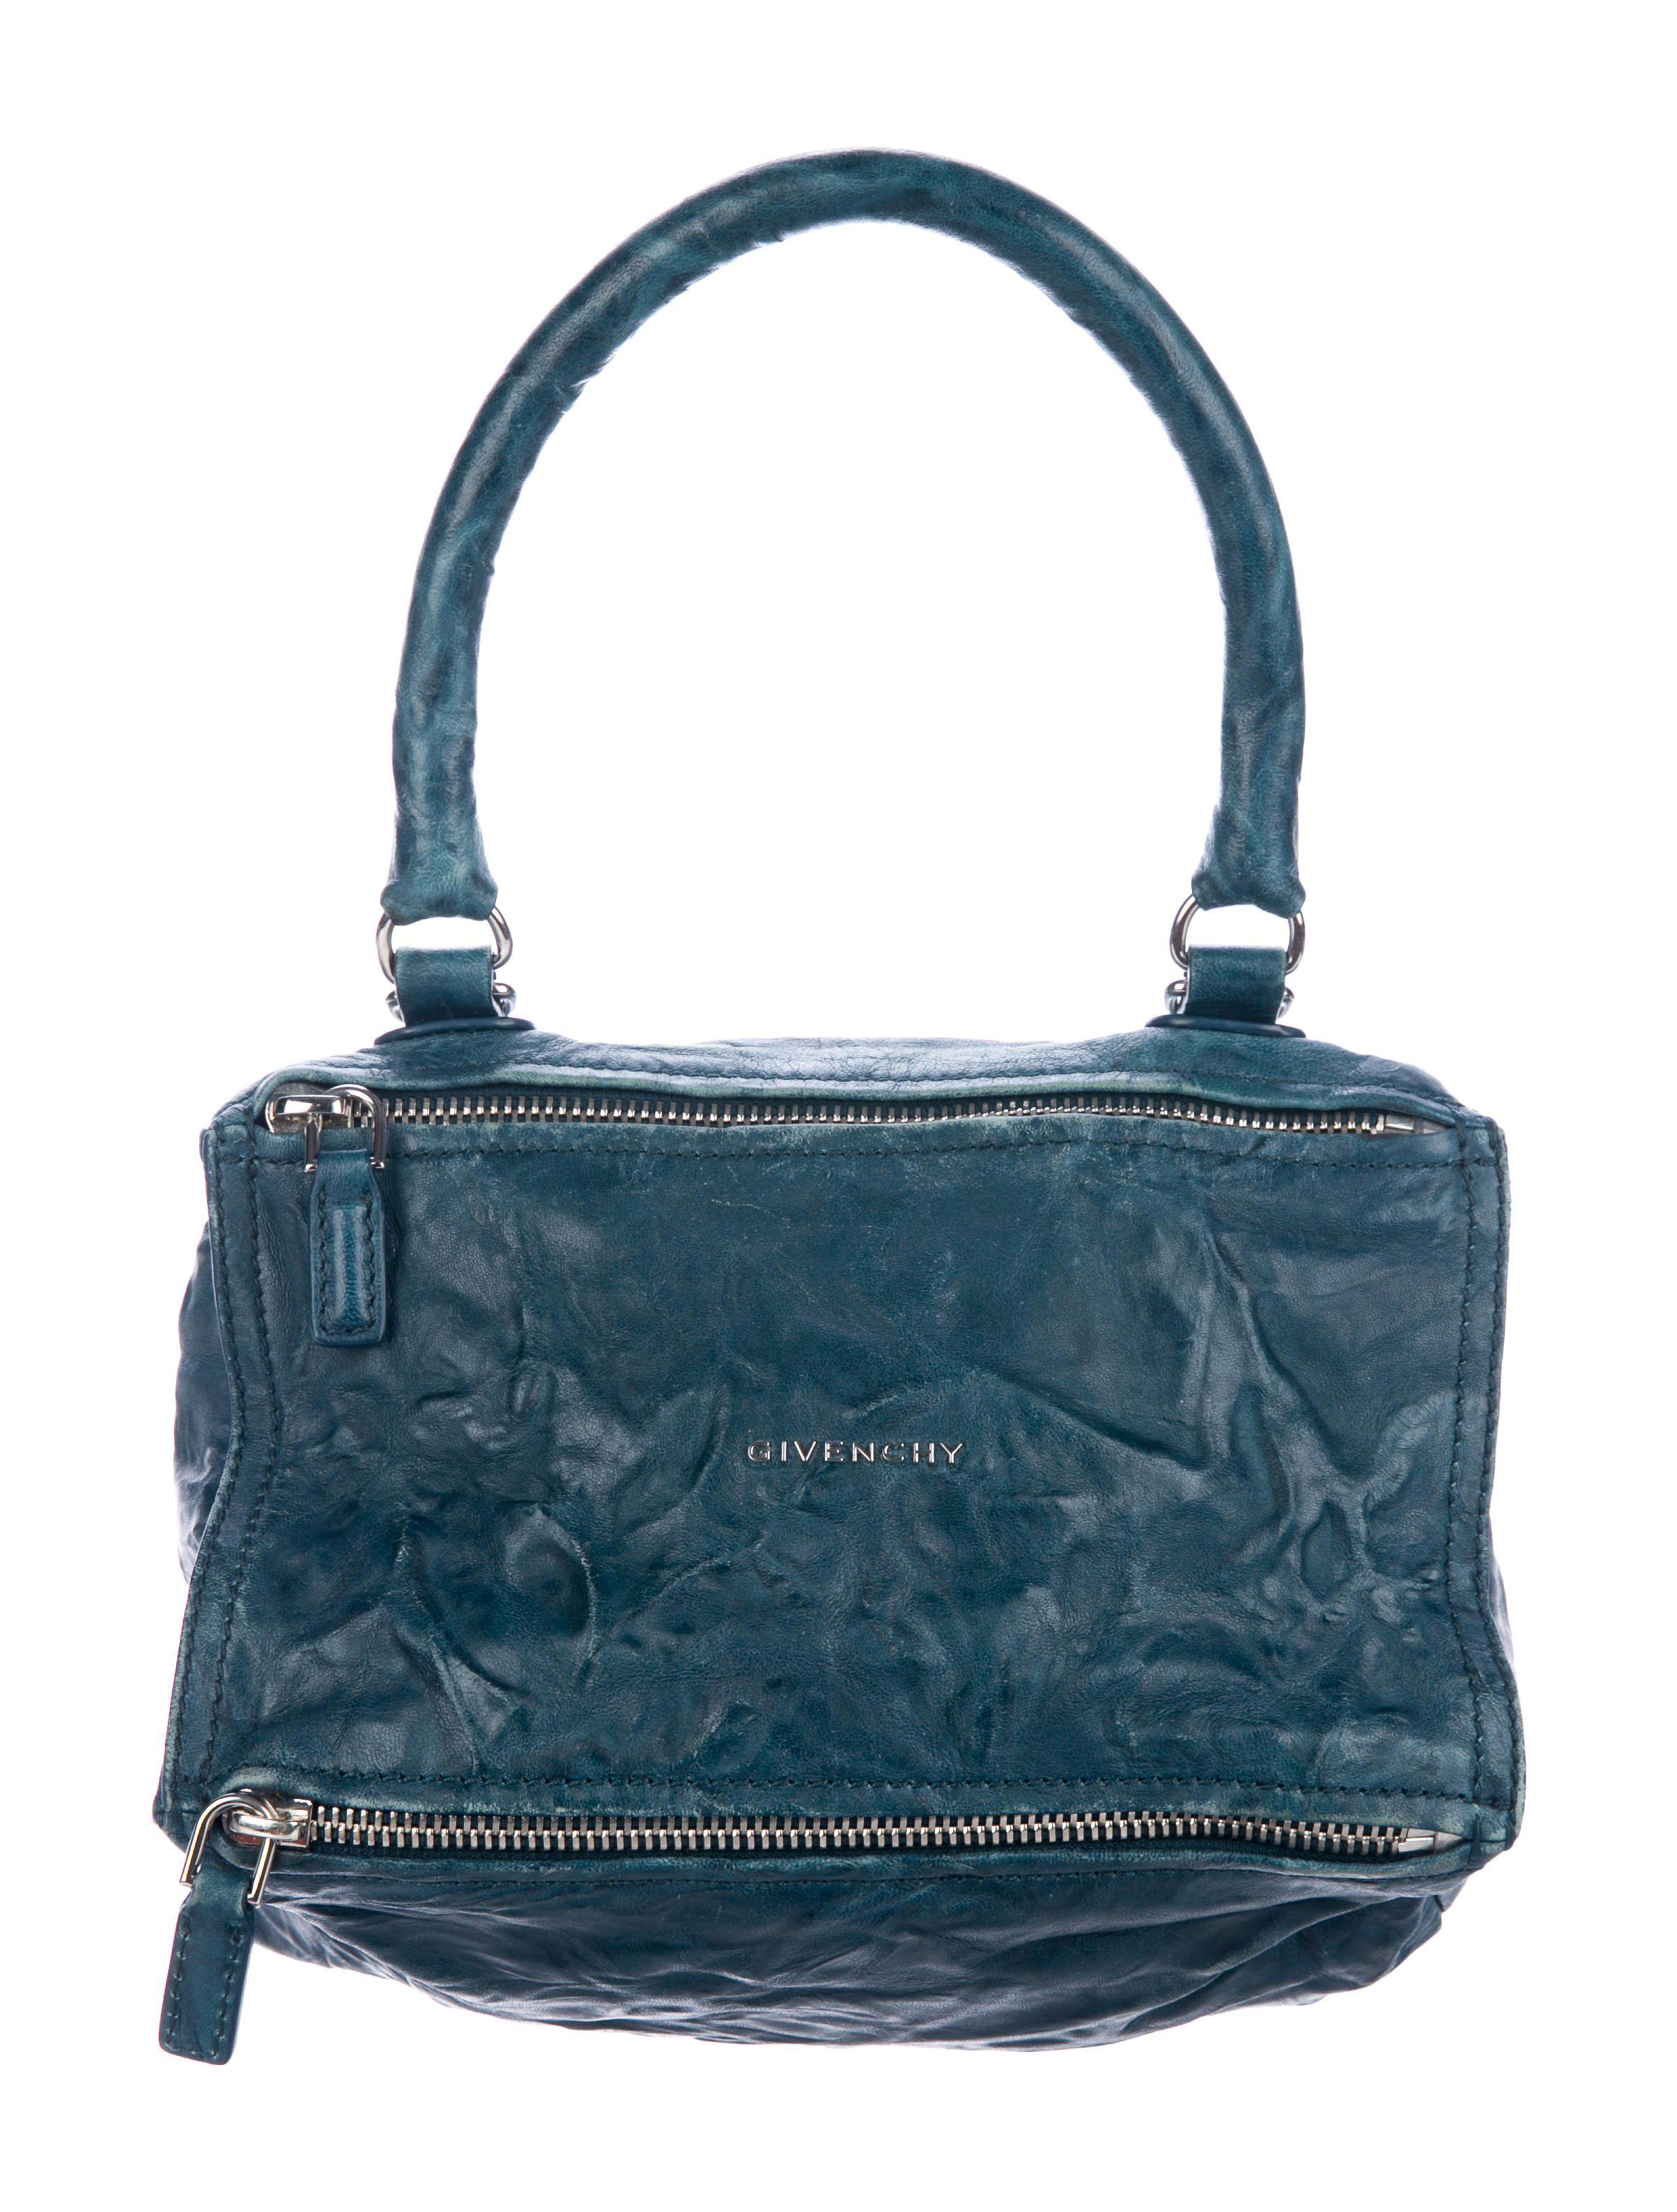 285a4f501e Lyst - Givenchy Small Pepe Pandora Bag Blue in Metallic